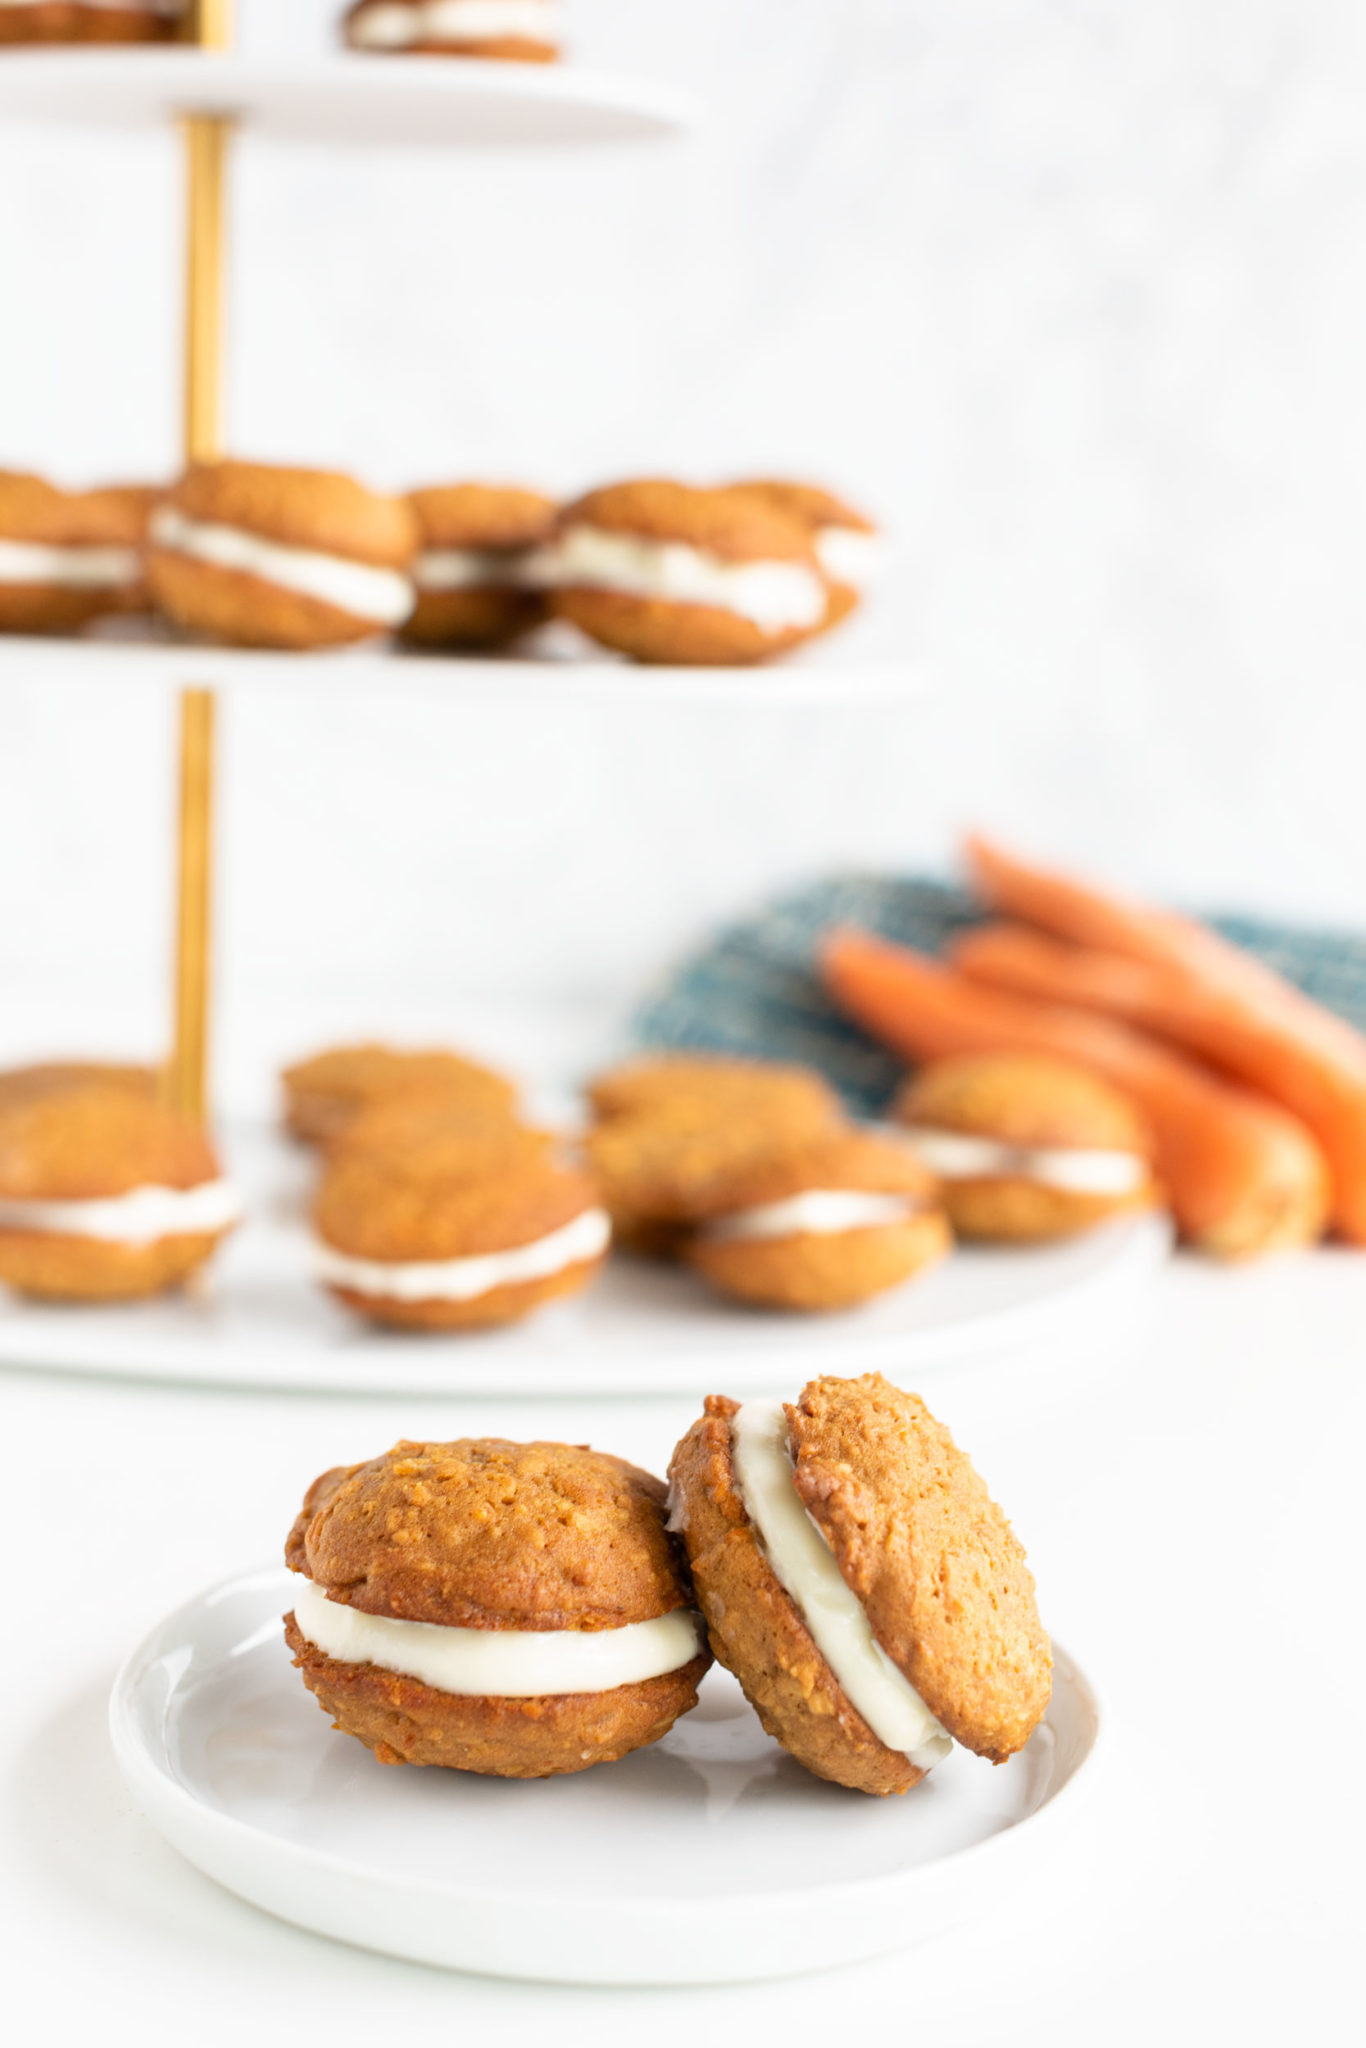 two cookie sandwiches on white plate with tiered display filled with cookie sandwiches in the background